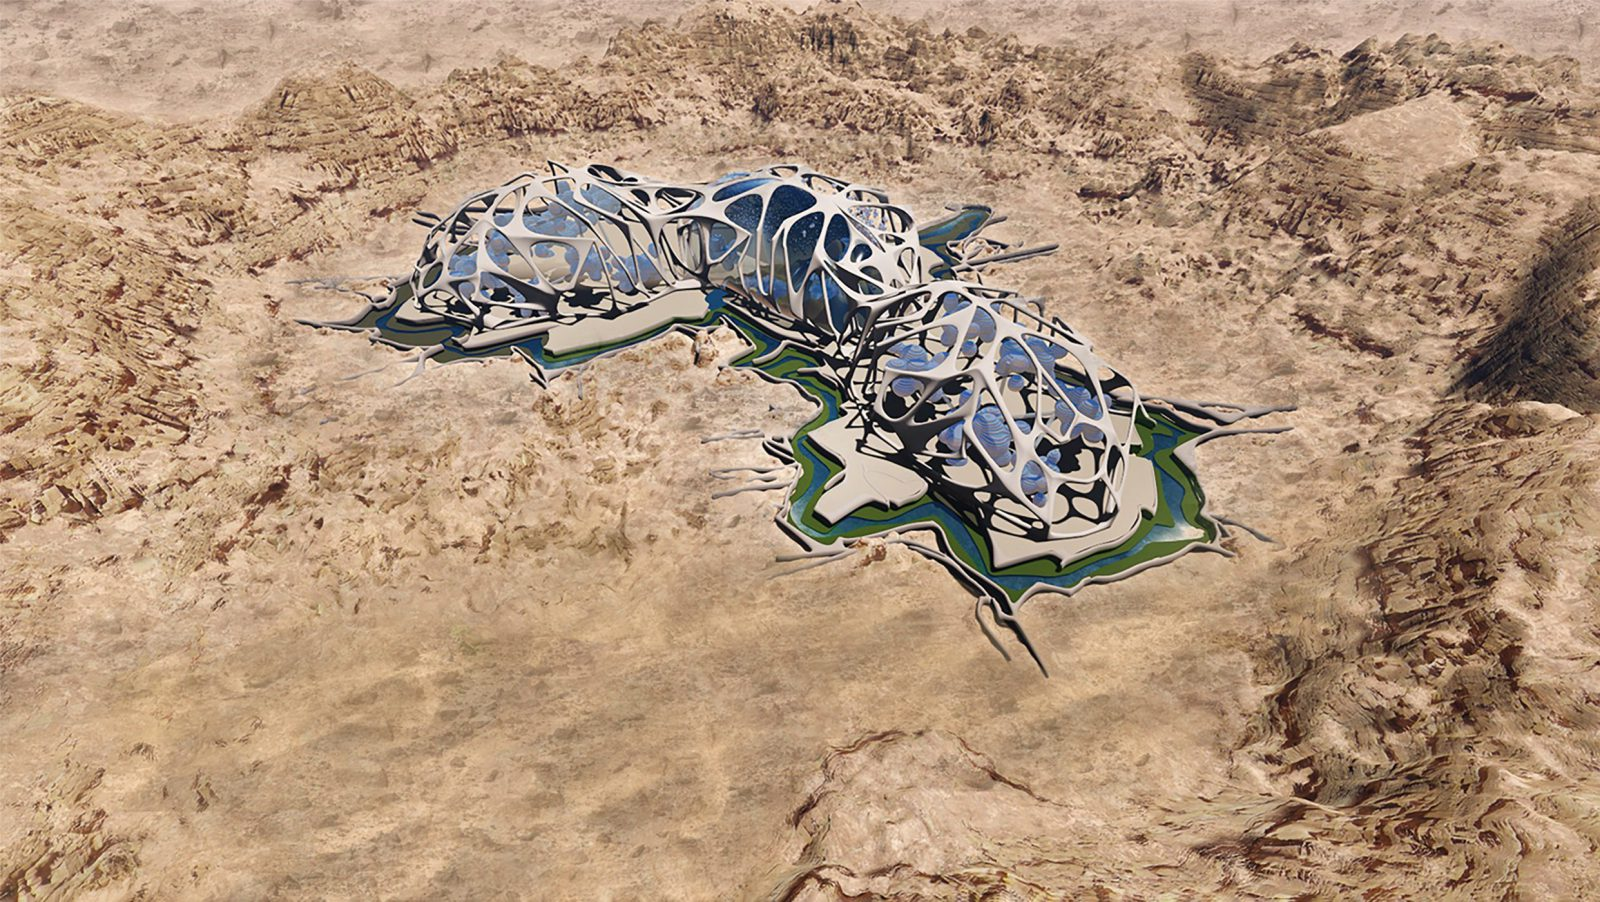 3D Printed Martian Cities May Soon Be Coming to the Mojave Desert